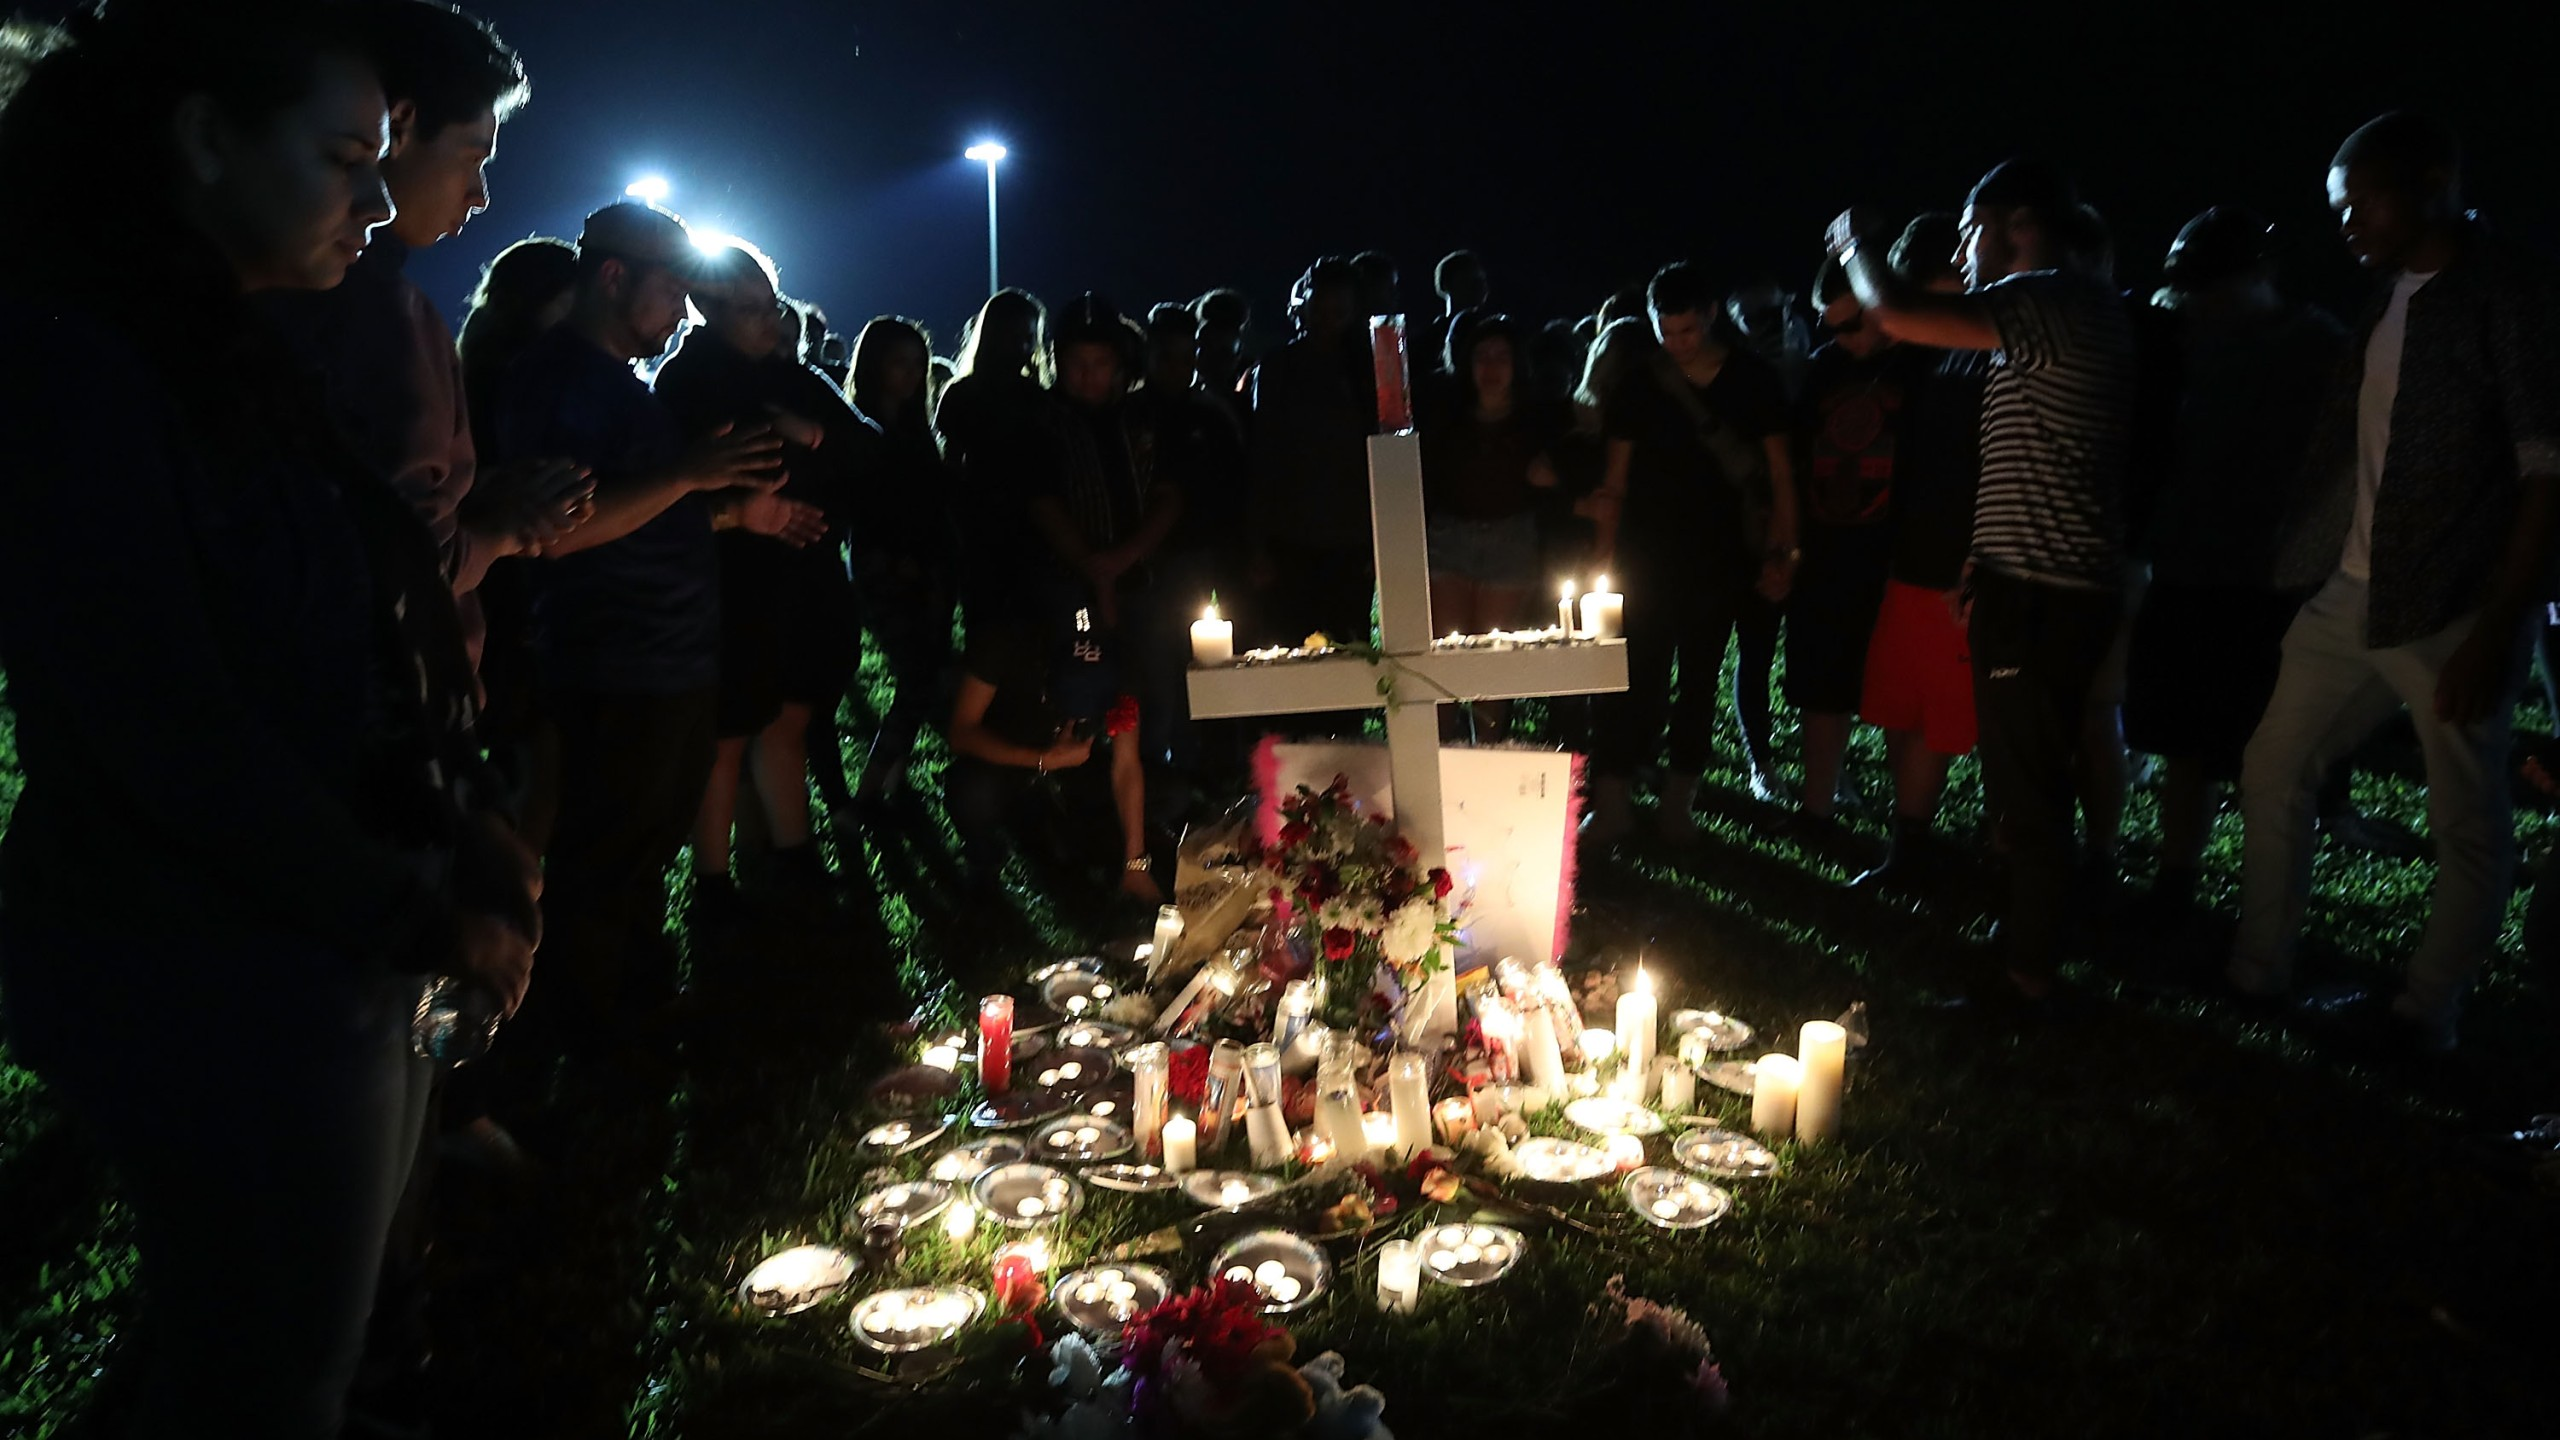 Students, friends and family gather to pray during a candlelight vigil for victims of the mass shooting at Marjory Stoneman Douglas High School, in Parkland, Florida, on Feb. 15, 2018. (Credit: Mark Wilson / Getty Images)